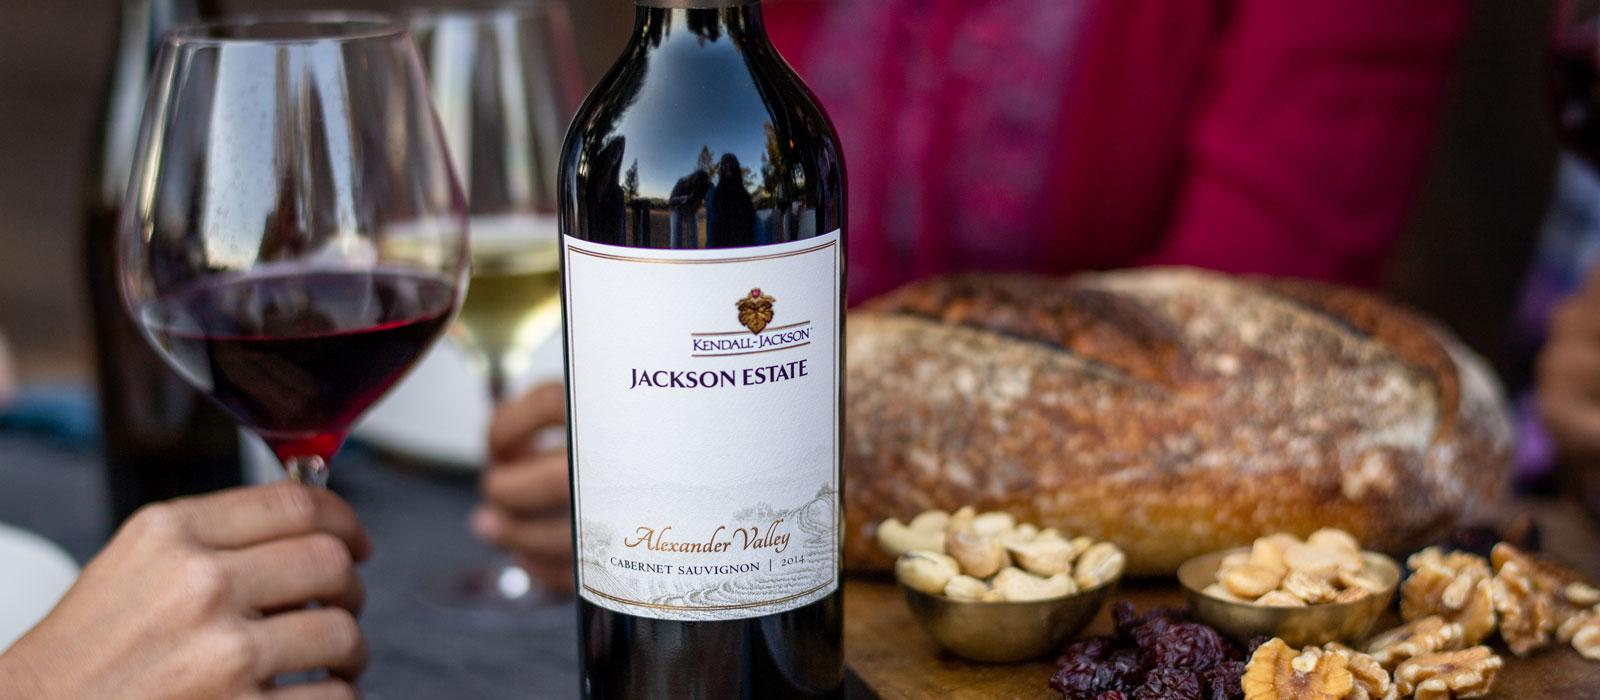 kendall-jackson-jackson-estate-wine-collection